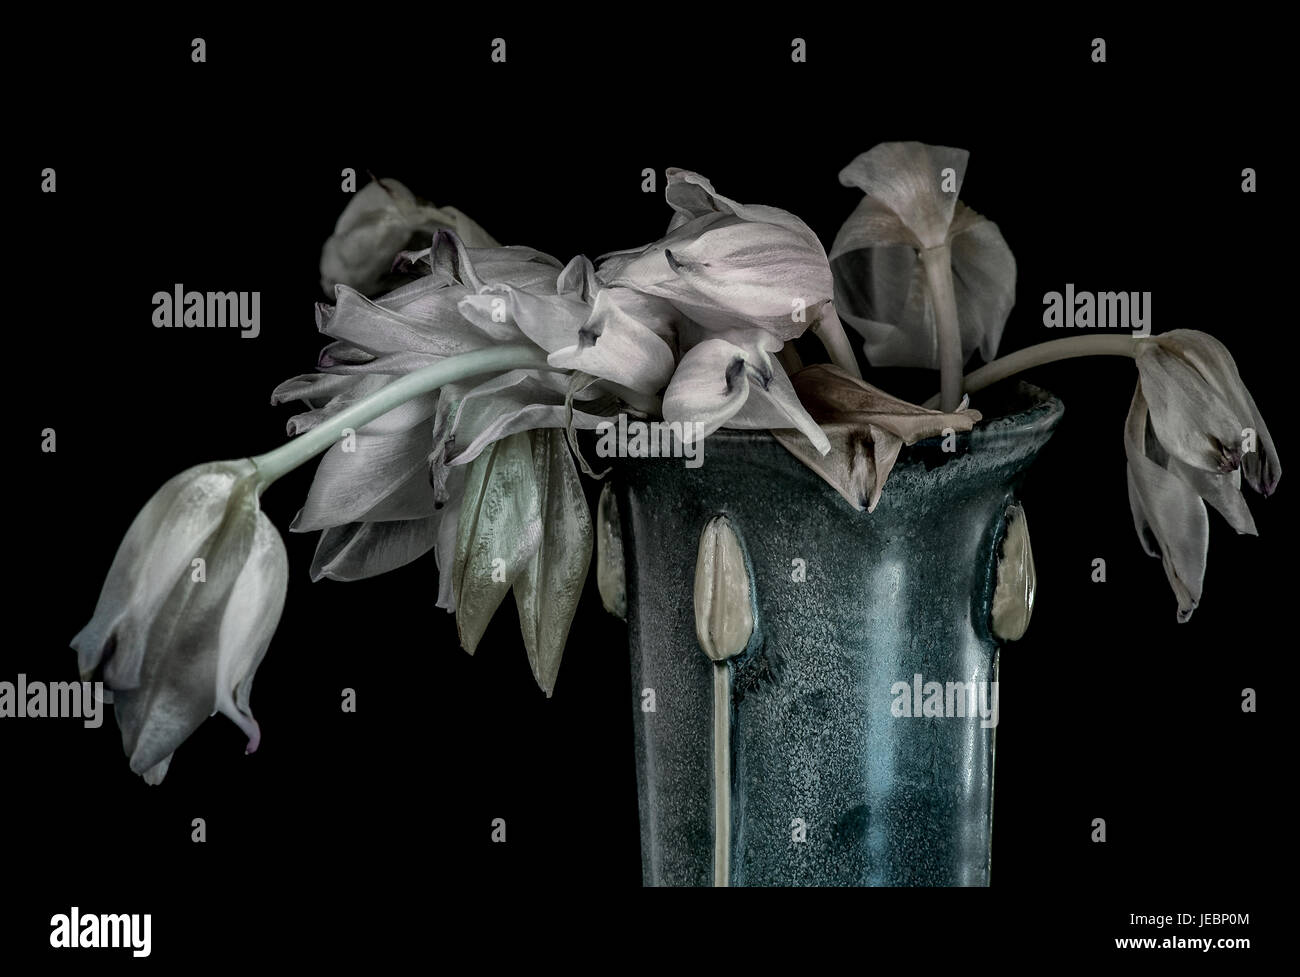 Wilted tulips in vase- still life with black background Stock Photo